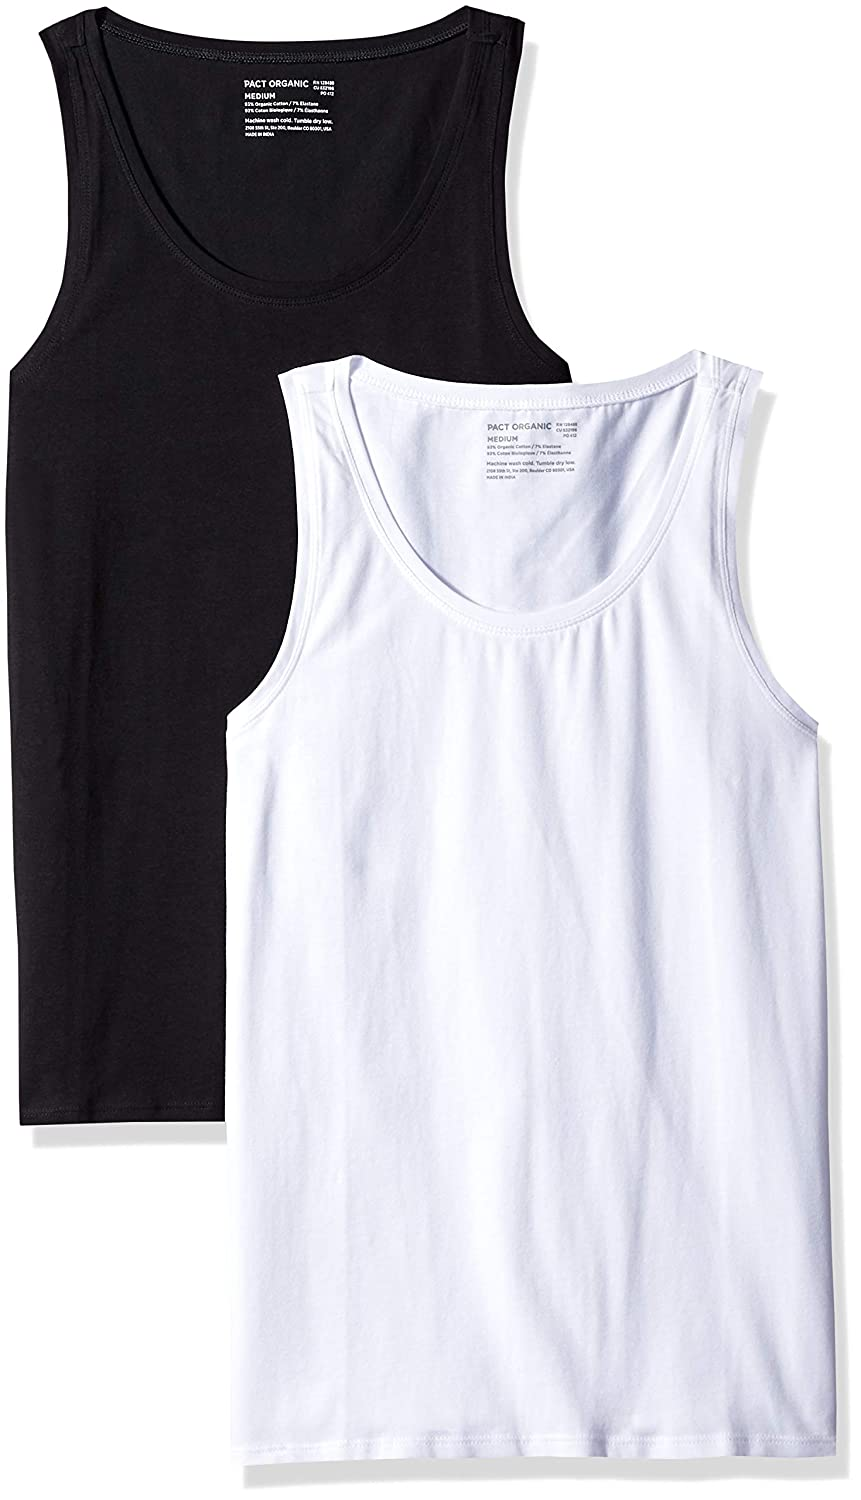 bdcf25913dced Pact Women's Stretch-fit Tank Top, Scoop Neckline (2 Pack) at Amazon  Women's Clothing store: